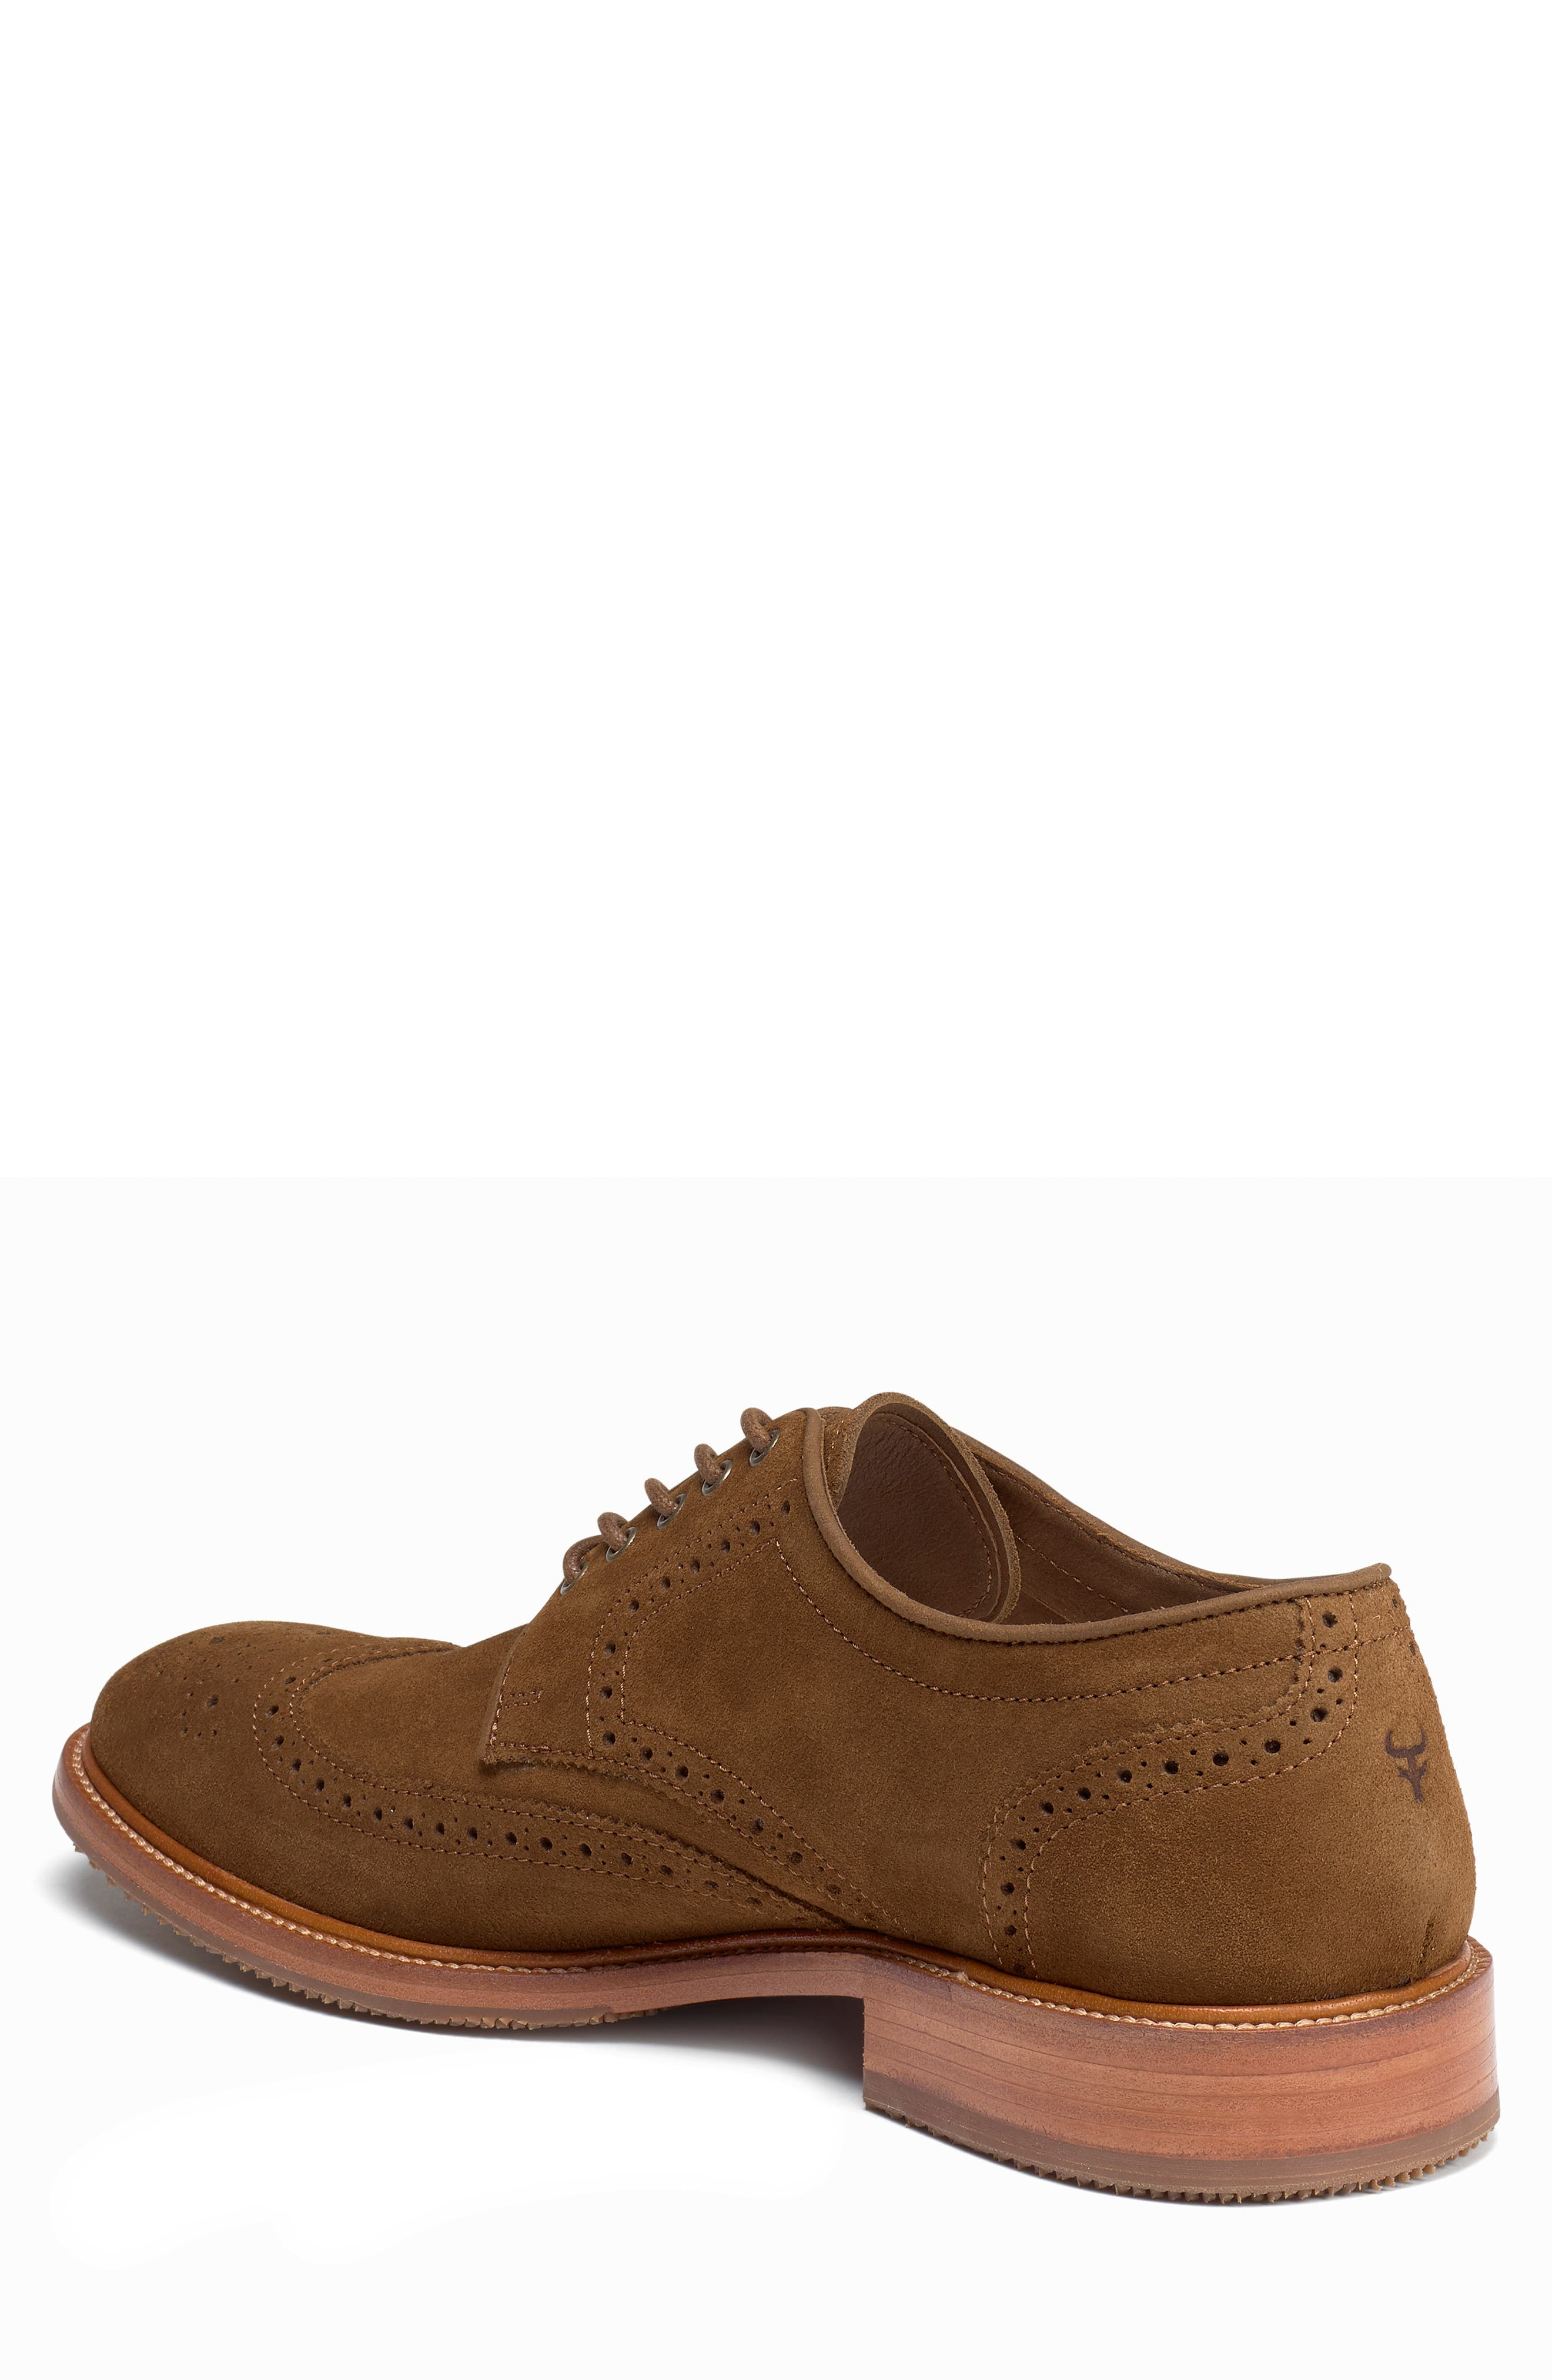 TRASK, Logan Wingtip Derby, Alternate thumbnail 2, color, SNUFF SUEDE